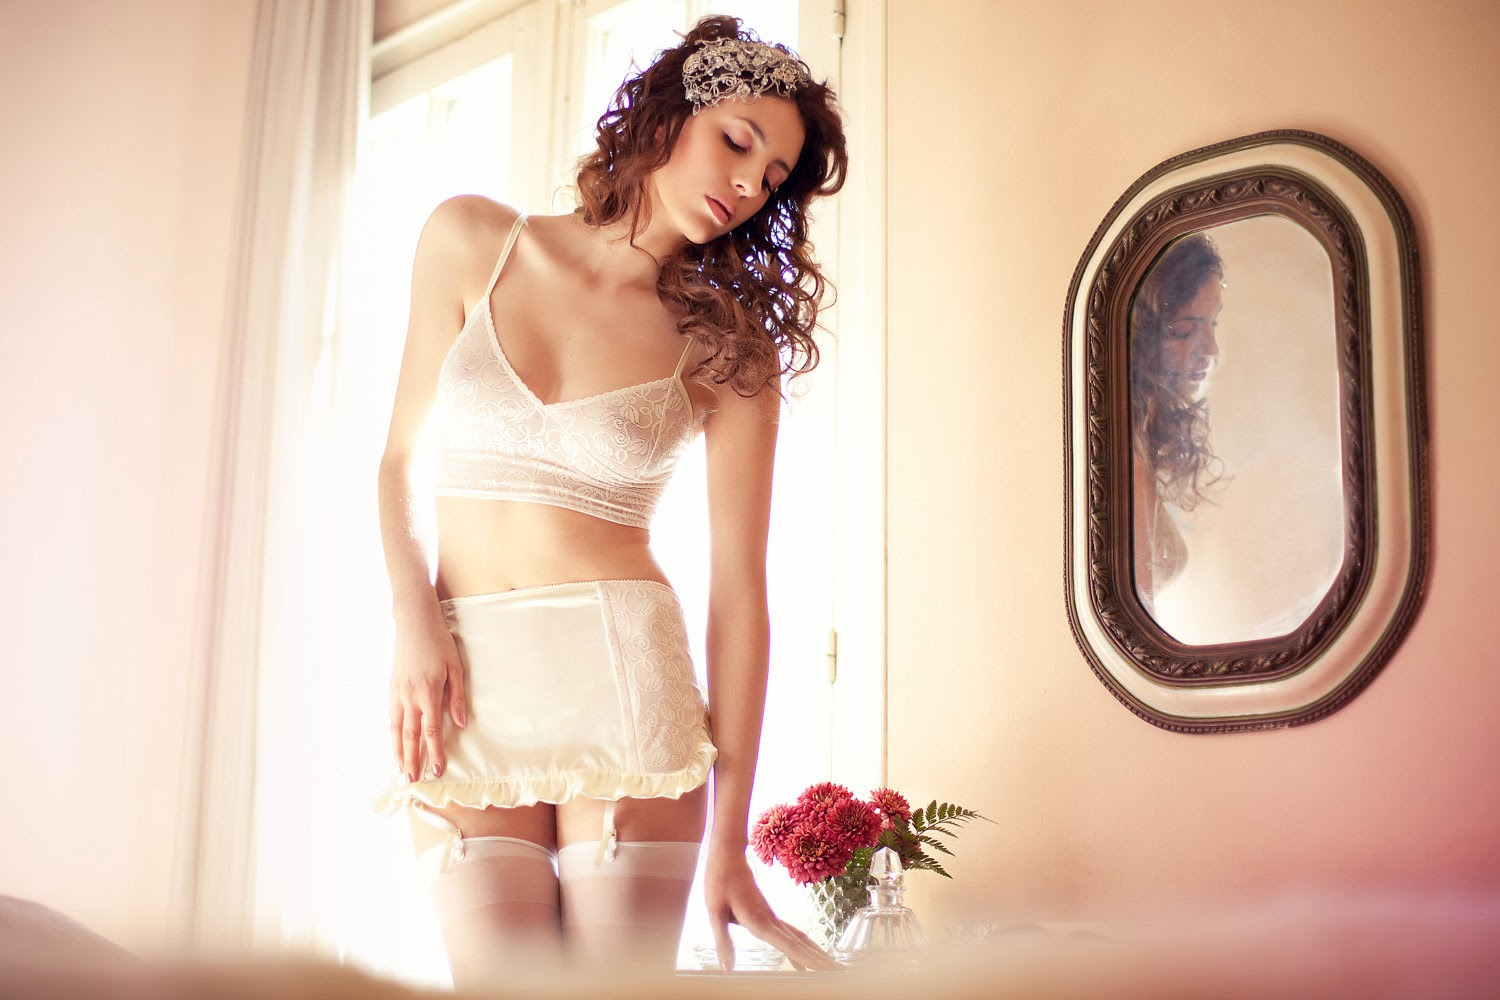 Choosing A Bridal Lingerie Set